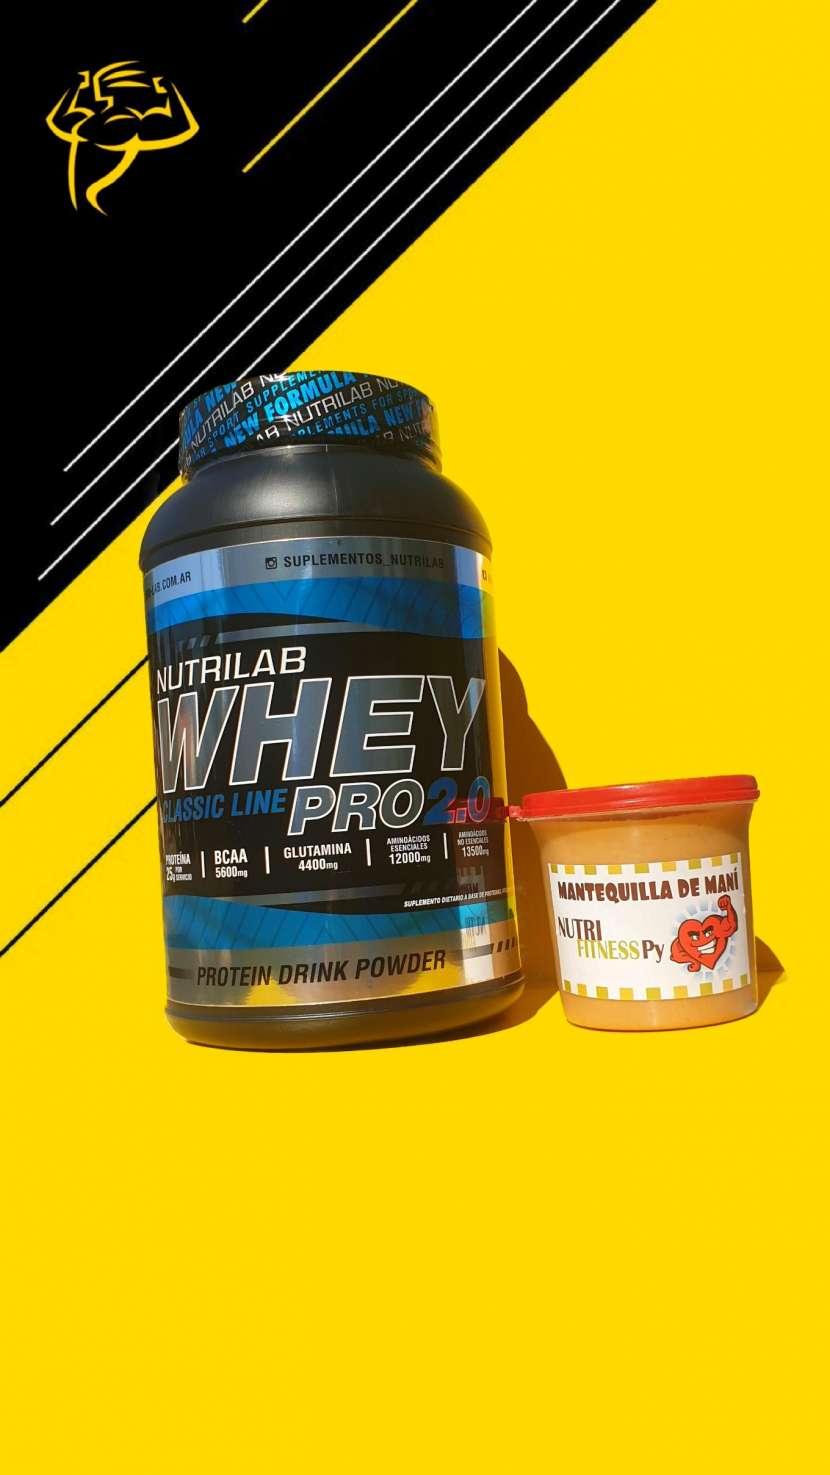 Combo Whey Protein + Mantequilla de maní - 0